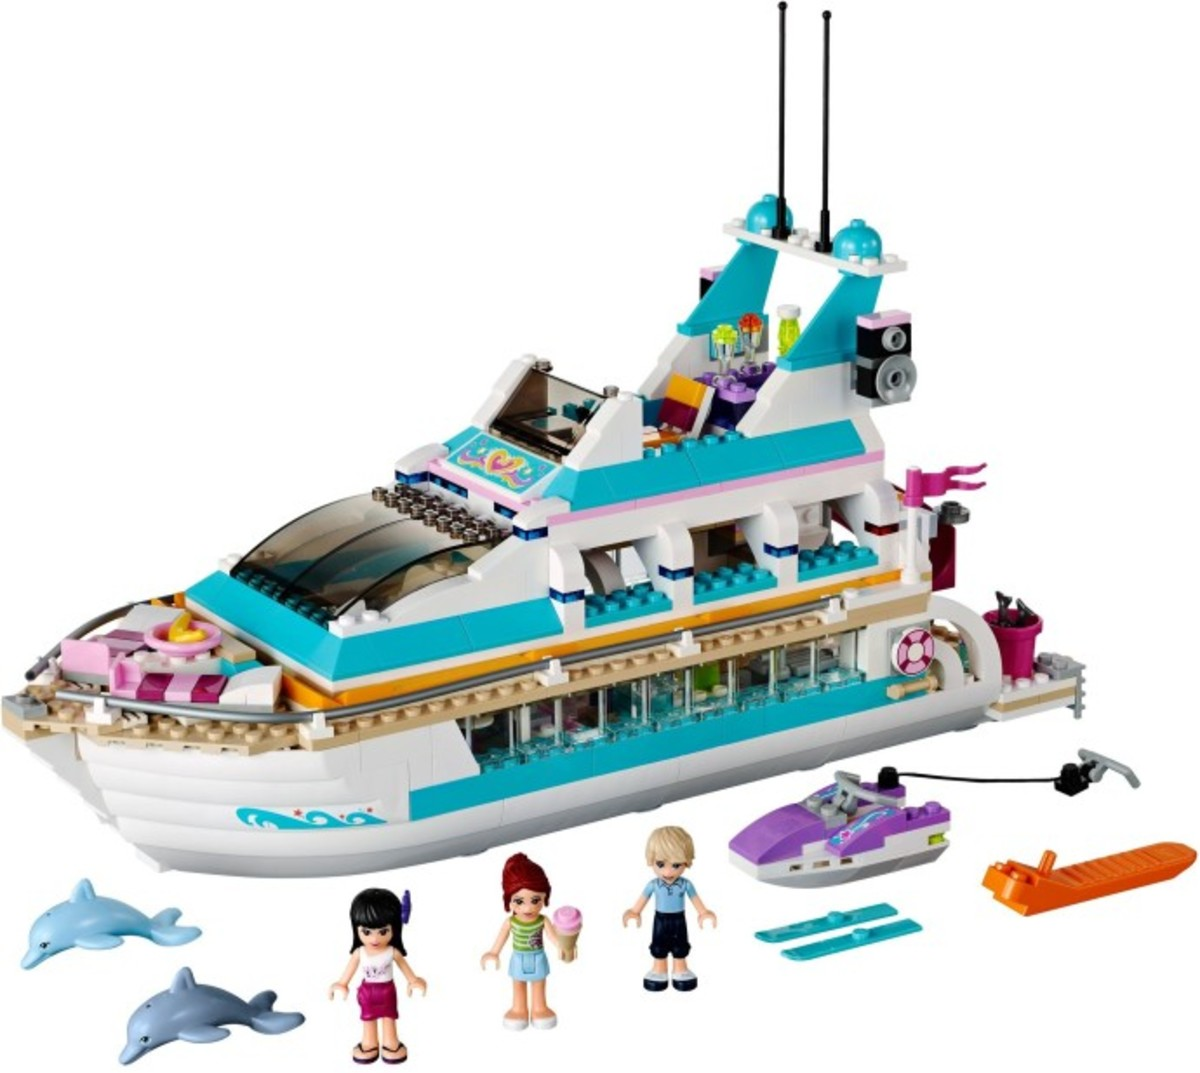 Lego Friends:  ALL of the Heartlake City Sets for Girls!